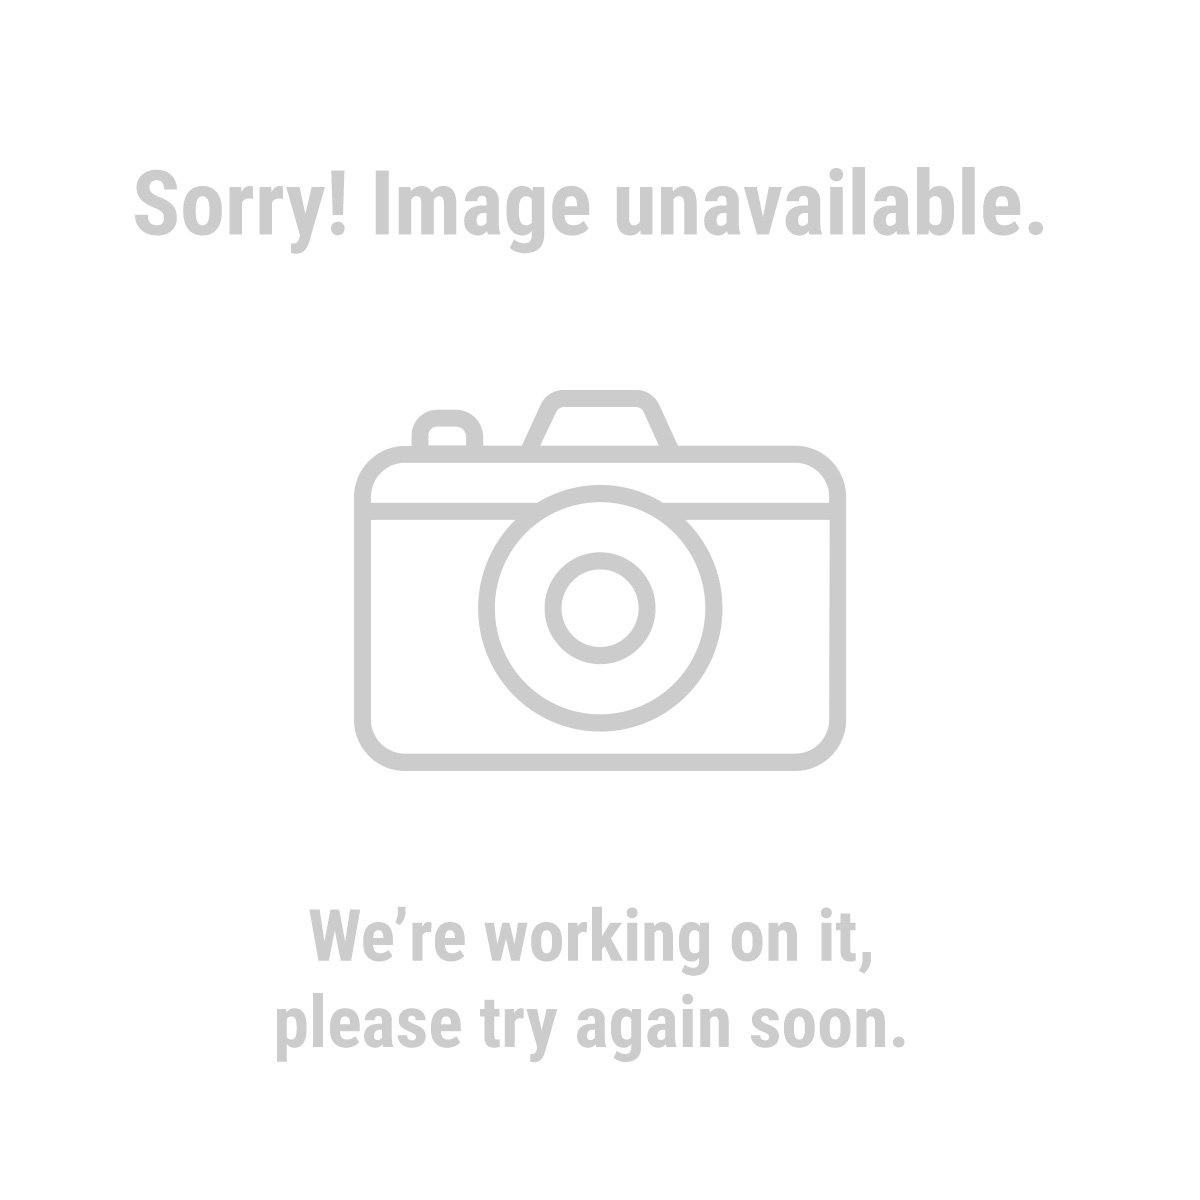 Harbor Freight Catalog : Harbor freight utility trailer bing images